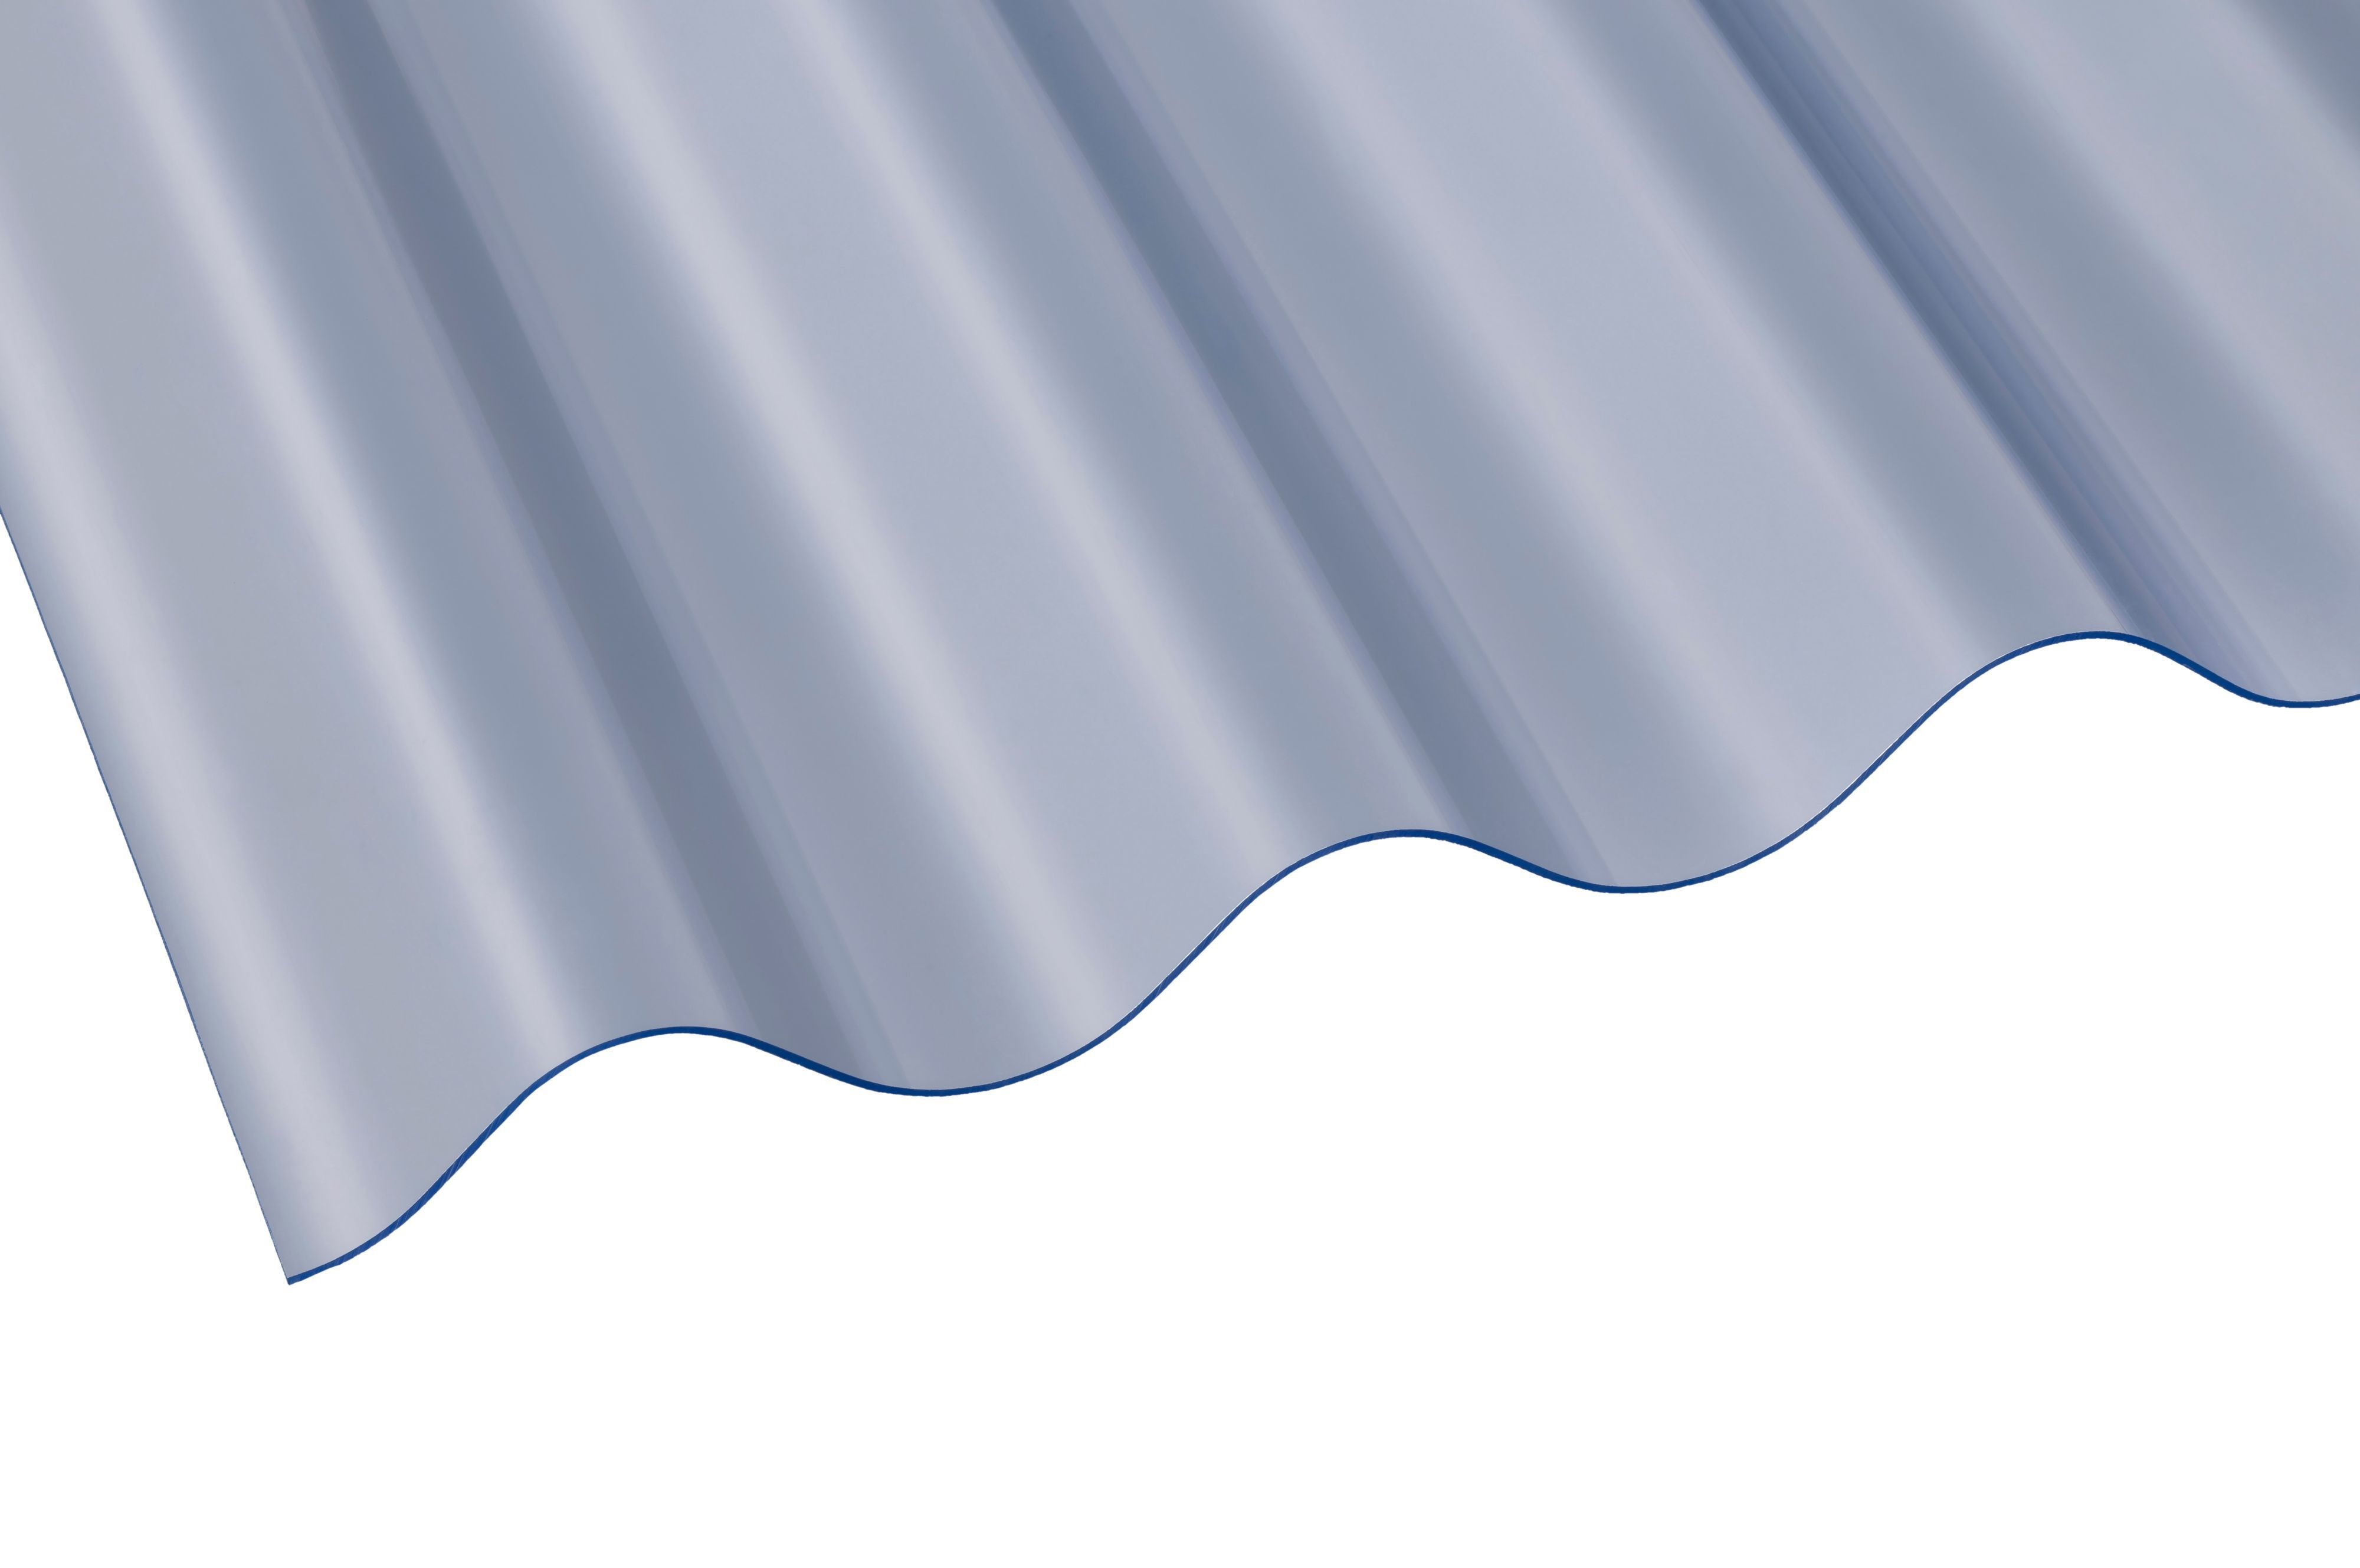 Clear Corrugated Pvc Roofing Sheet 2135mm X 762mm, Pack Of 10